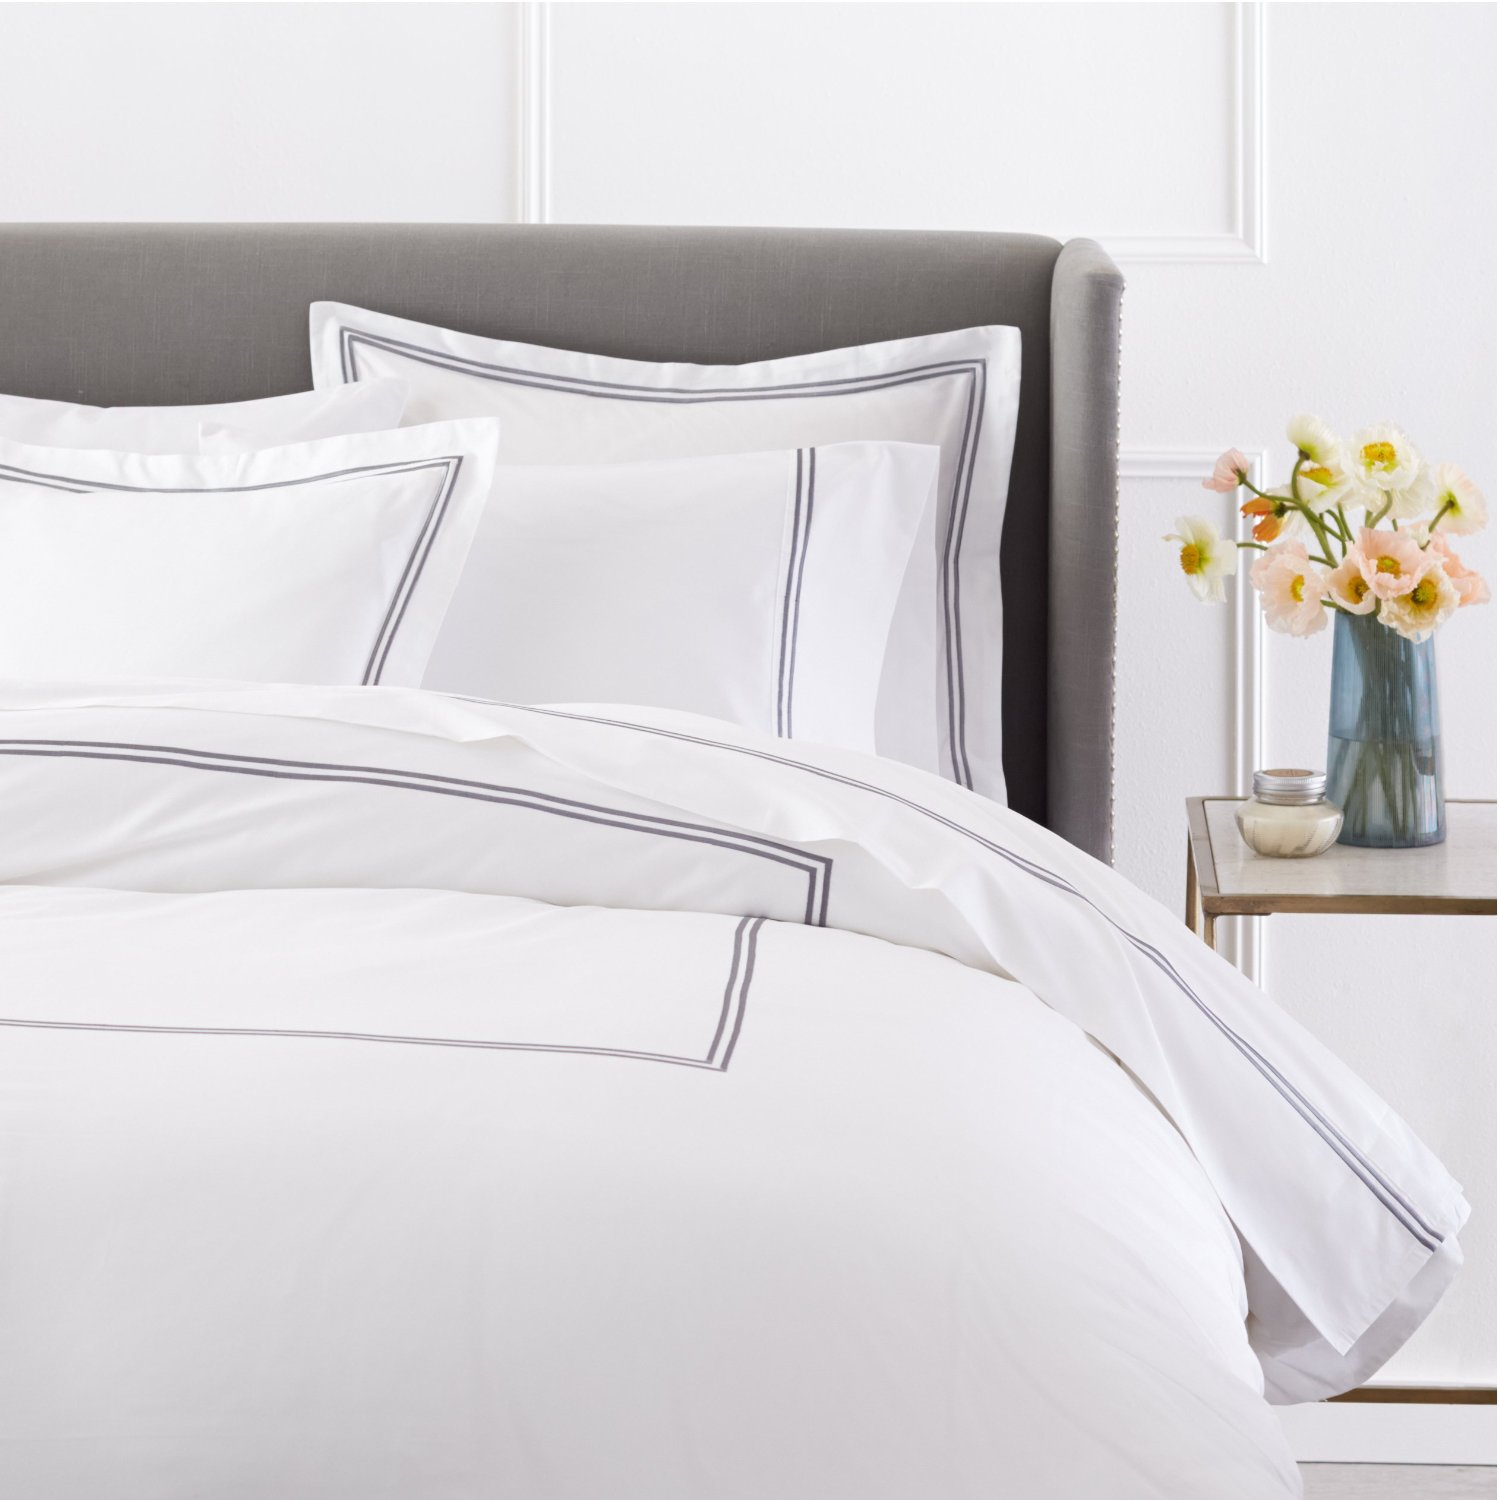 Using White Duvet Cover Queen for Gorgeous Bedroom Decoration Ideas: Organic Duvet Cover | Queen Duvet Cover | White Duvet Cover Queen